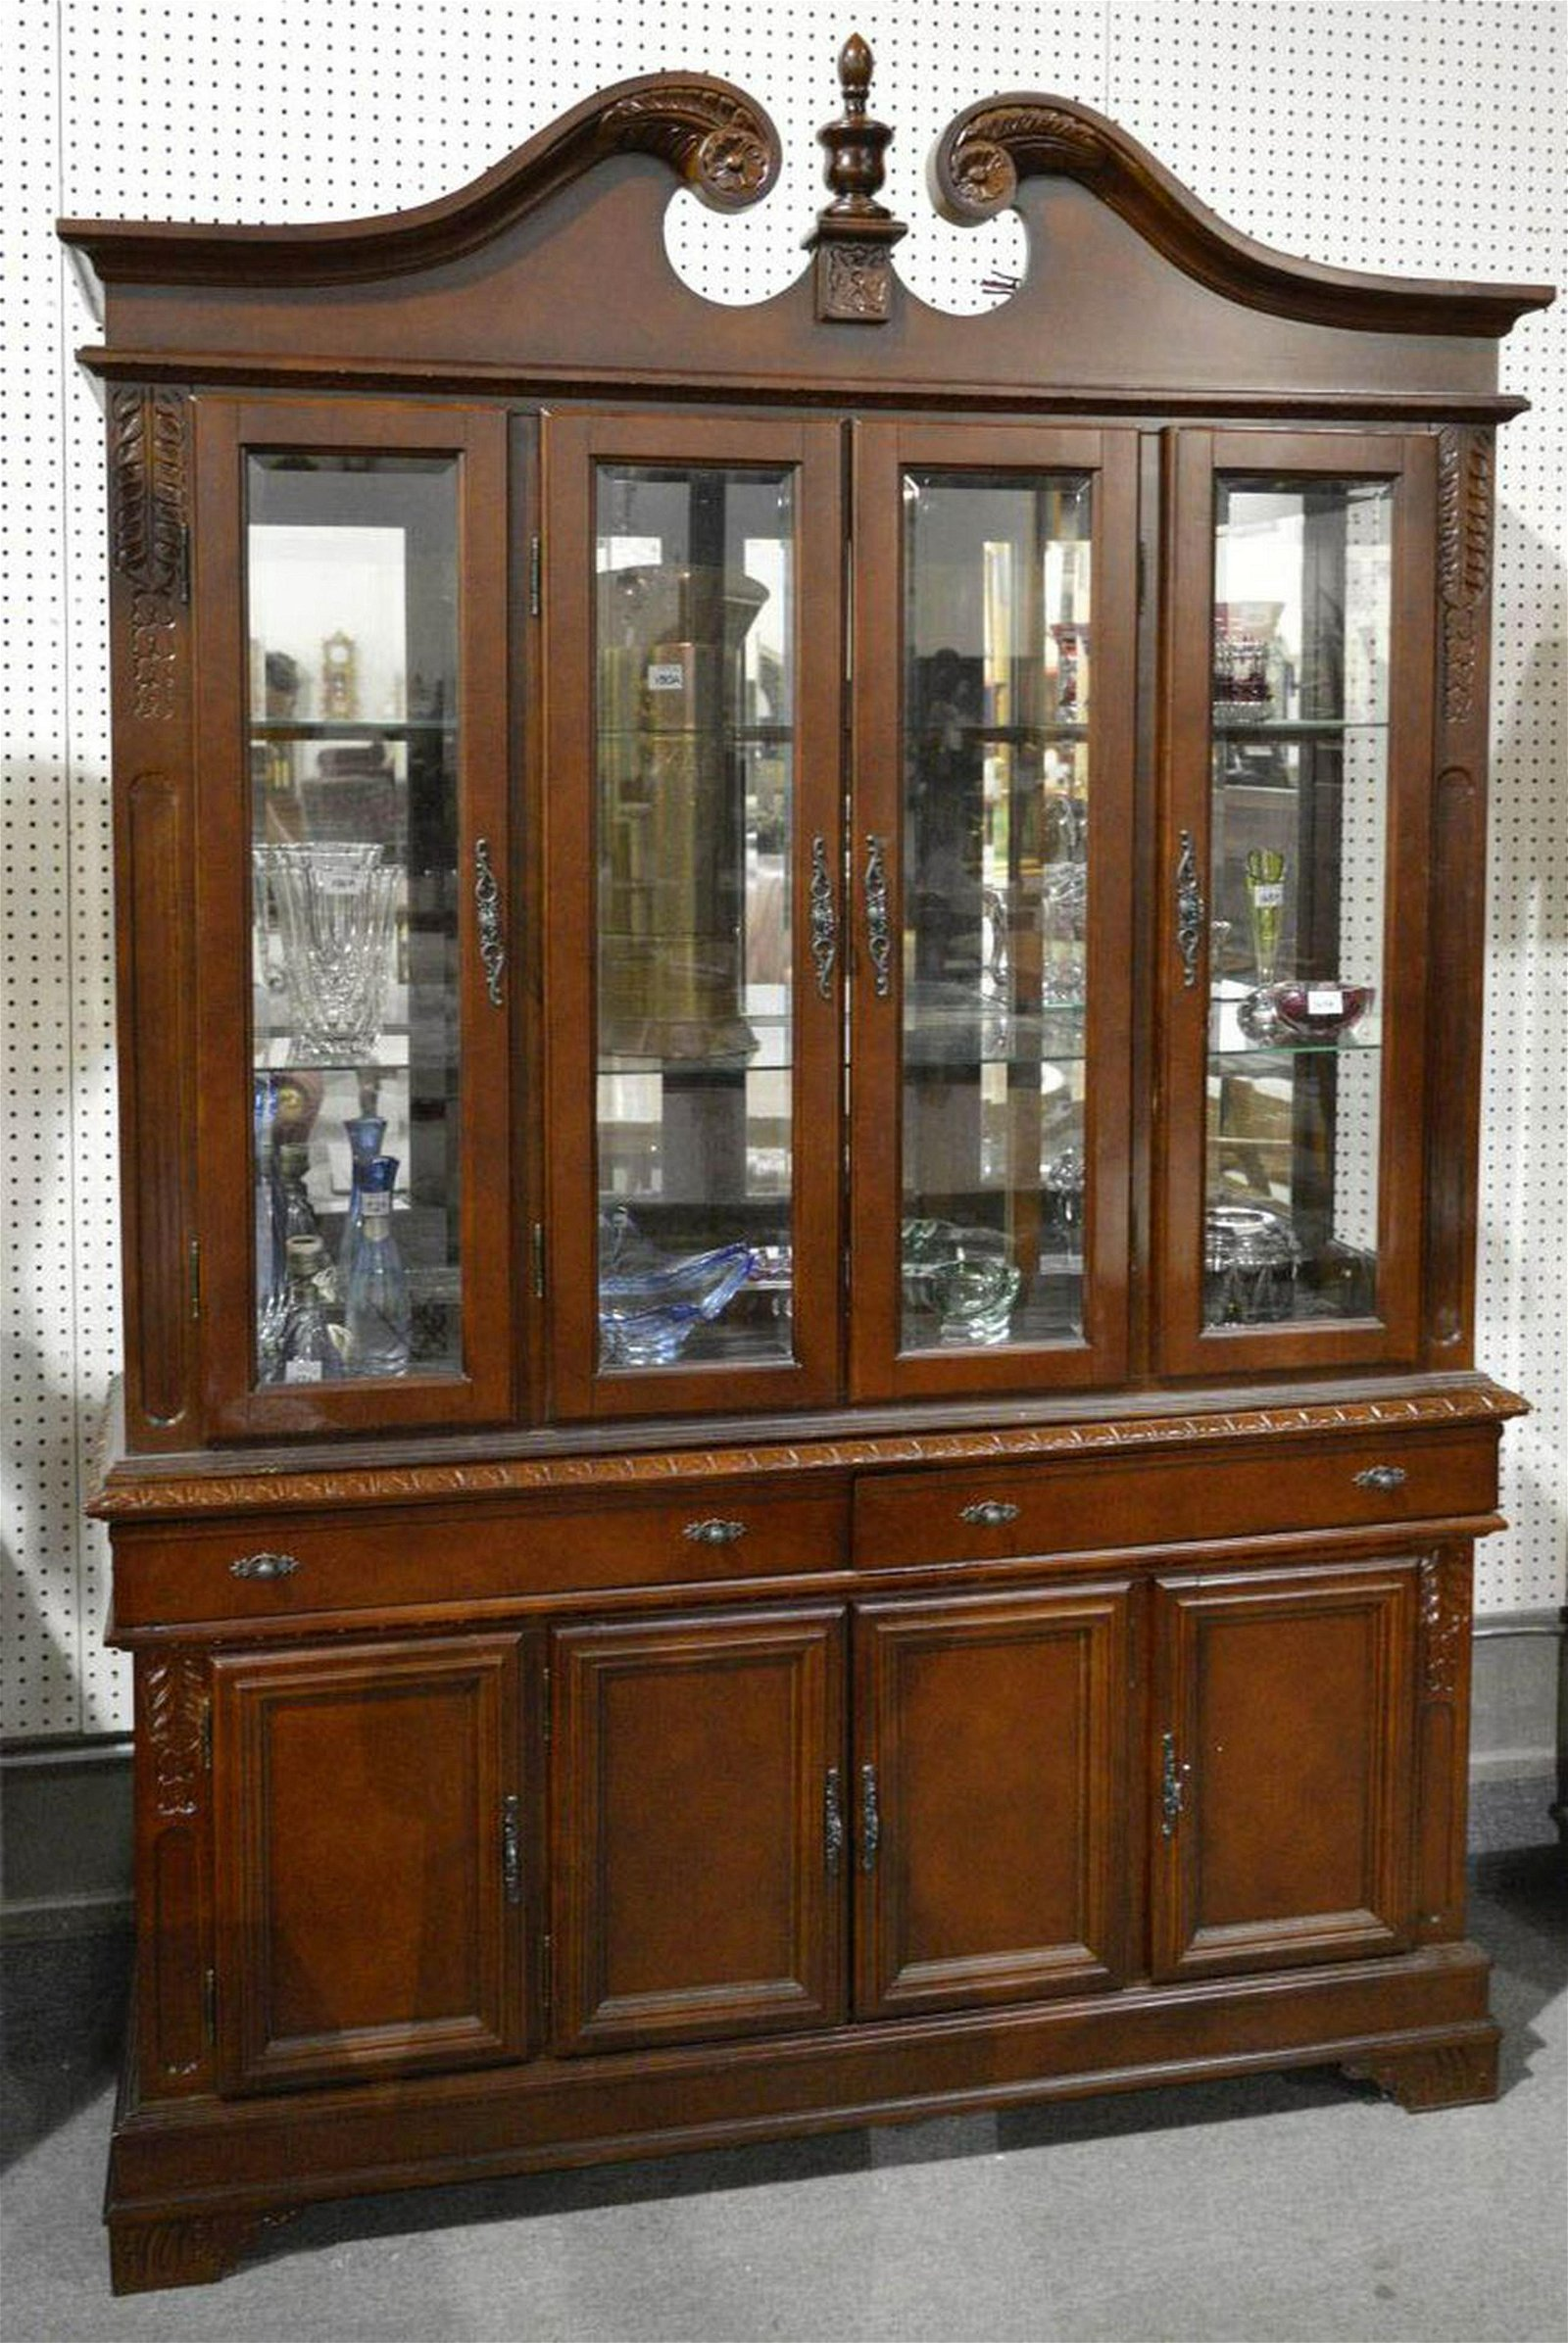 2-part china cabinet